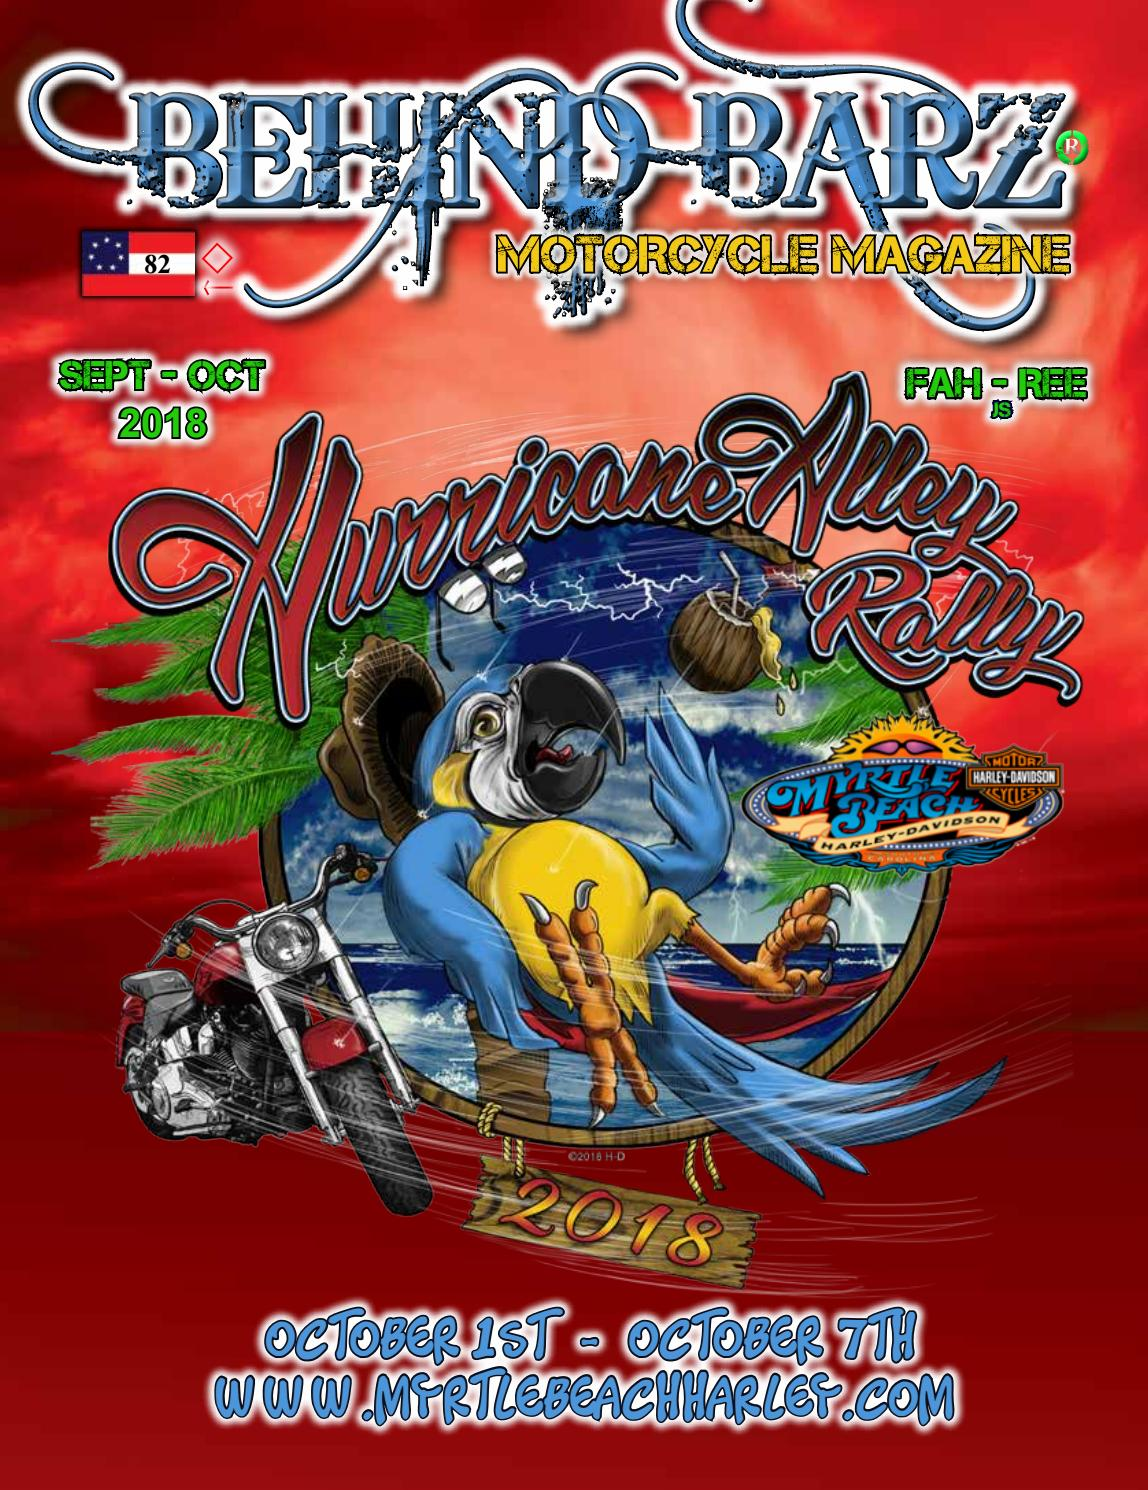 American Pickers Pikeville Nc behind barz motorcycle magbehind barz motorcycle mag - issuu